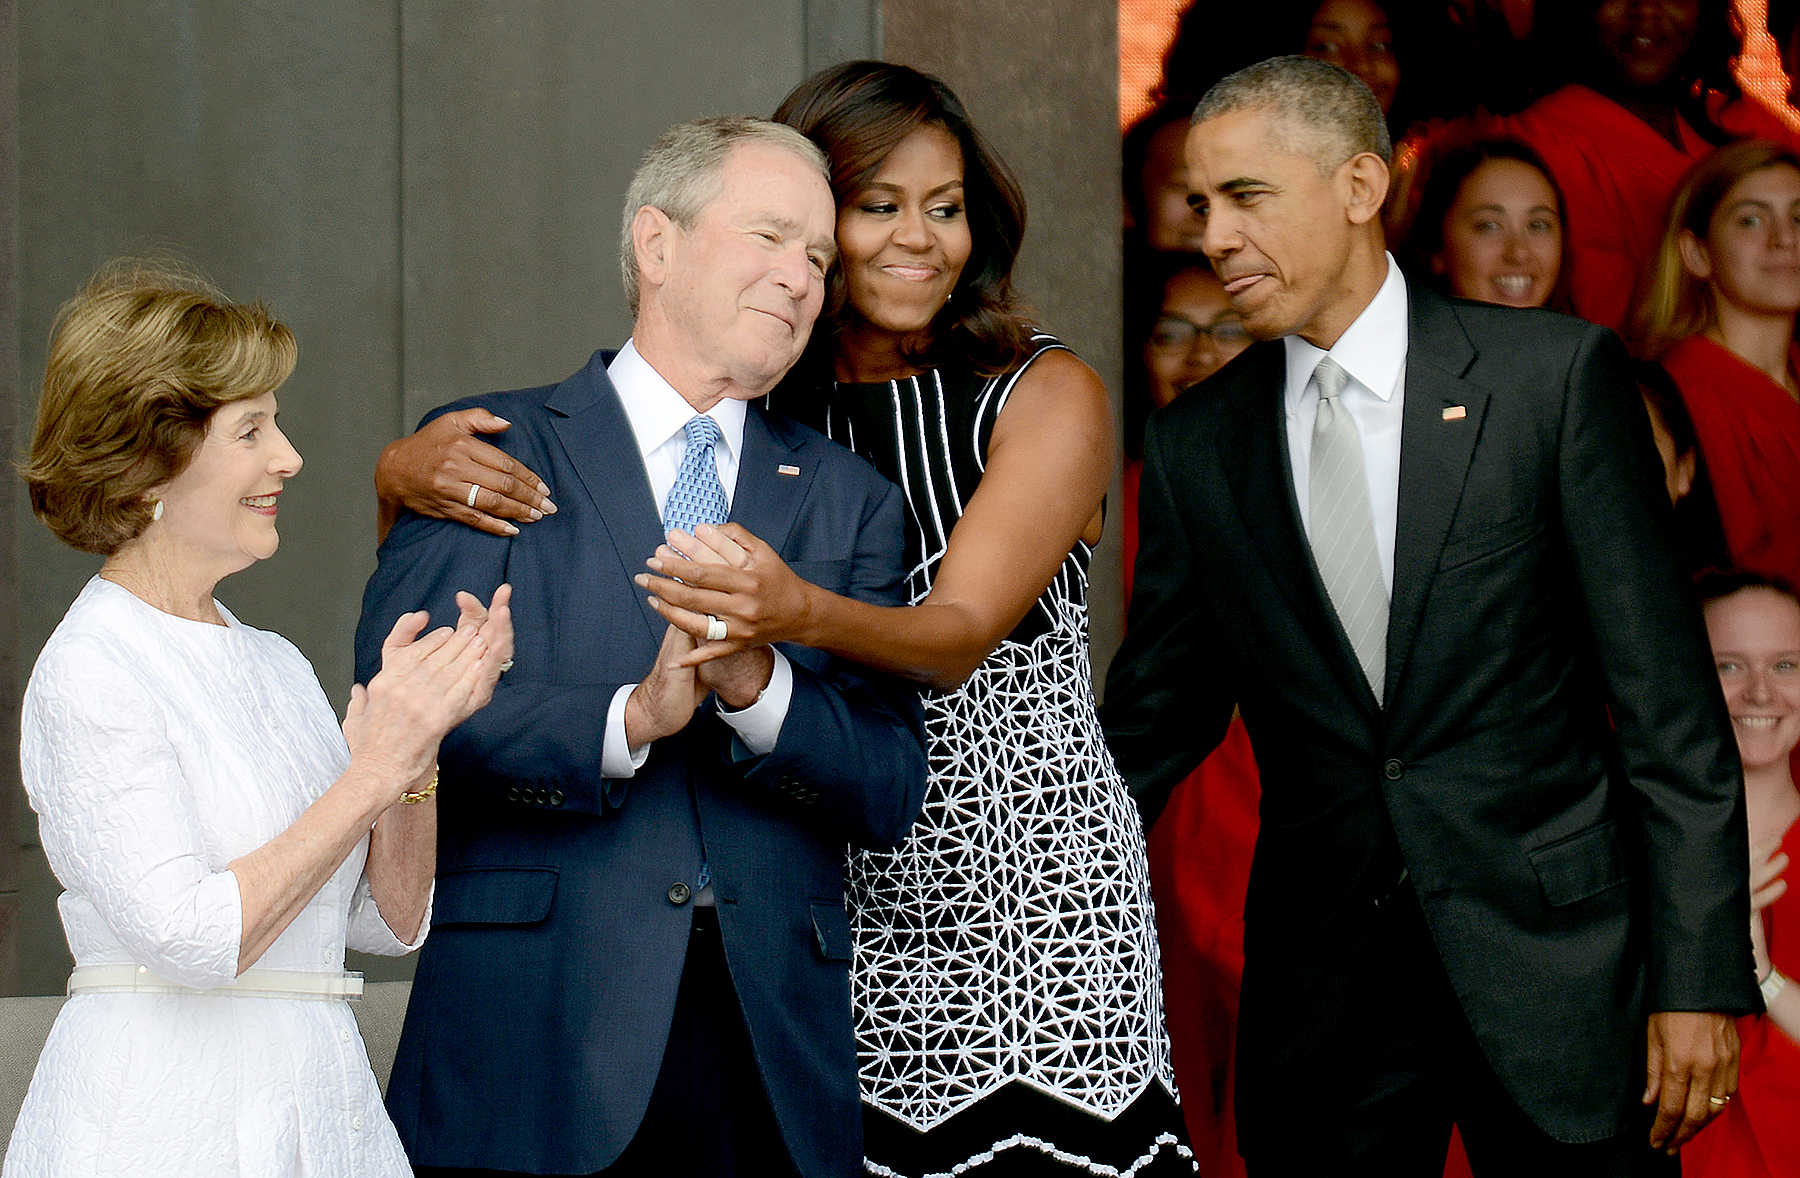 Barack Obama watches Michelle Obama embracing former president George Bush, accompanied by his wife, former first lady Laura Bush, while participating in the dedication of the National Museum of African American History and Culture September 24, 2016 in Washington, DC.